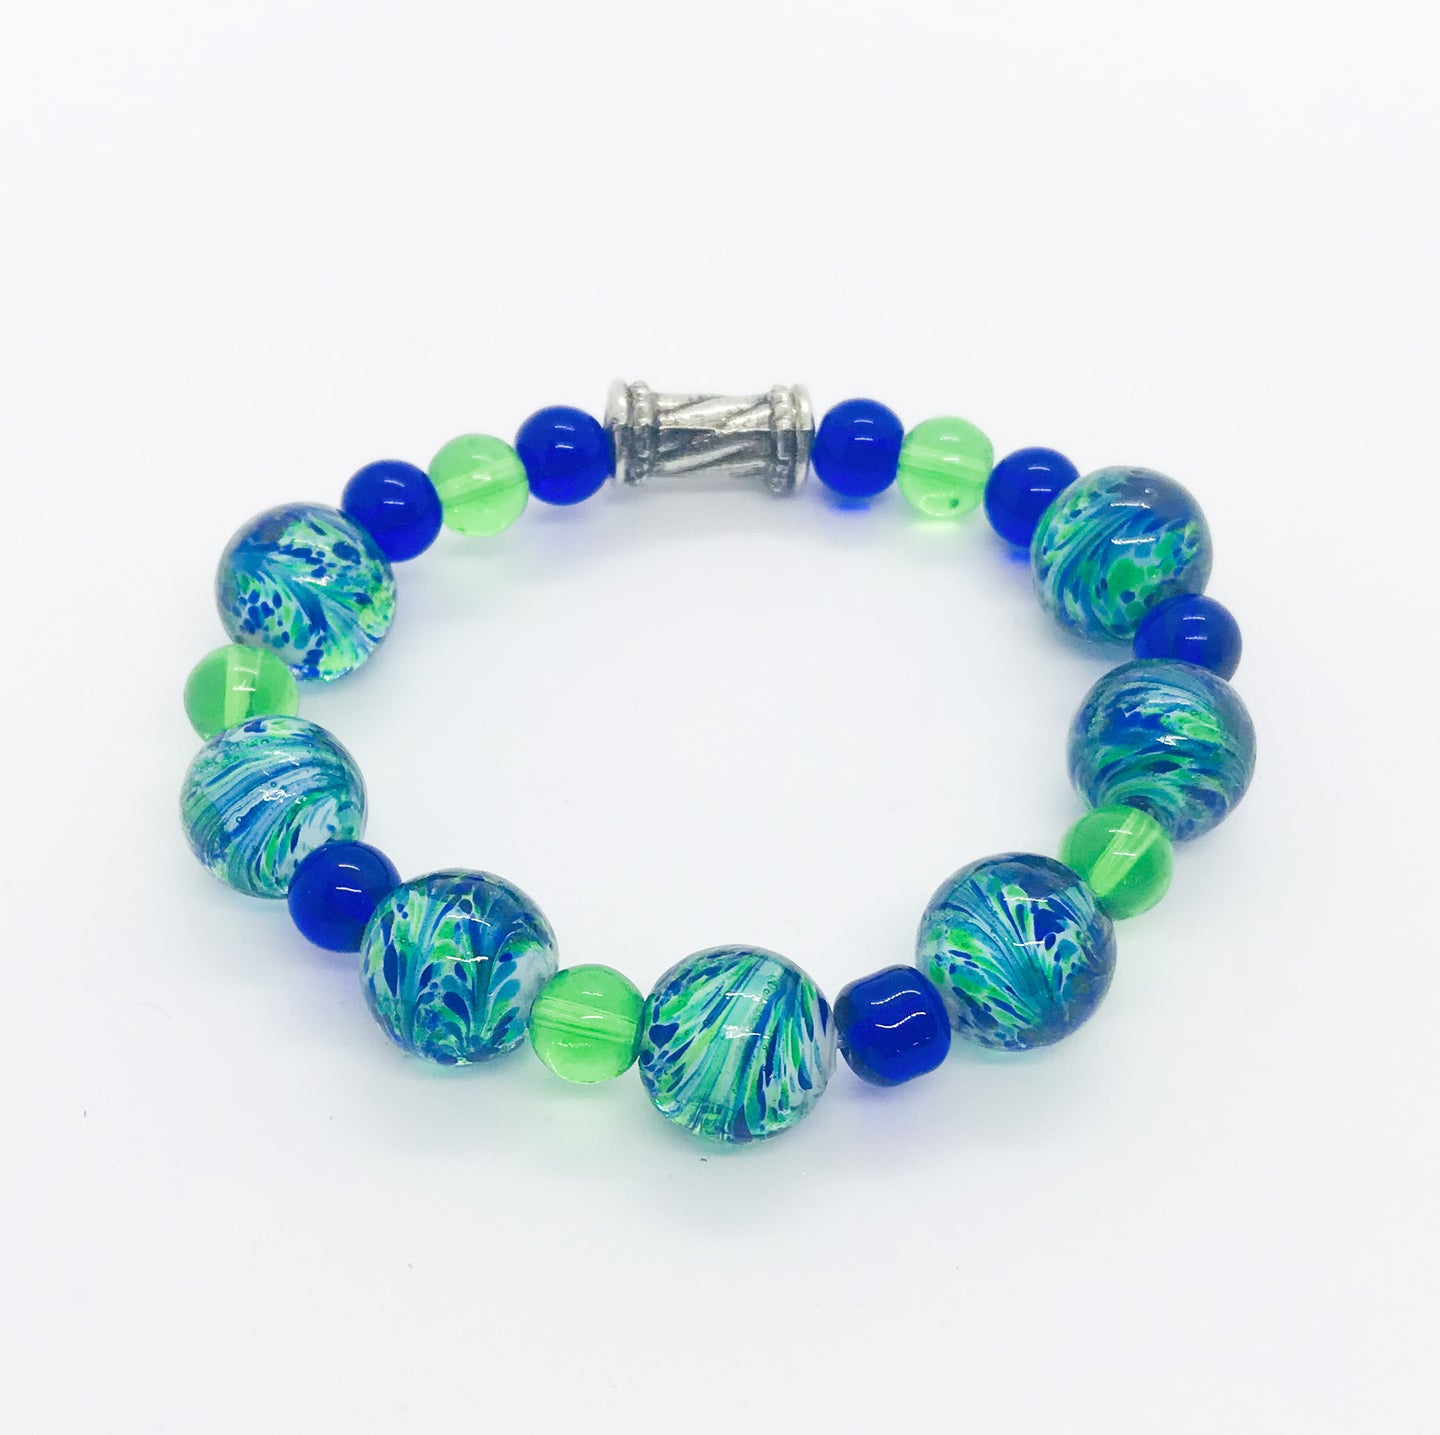 Glass Bead Stretchy Bracelet - B938